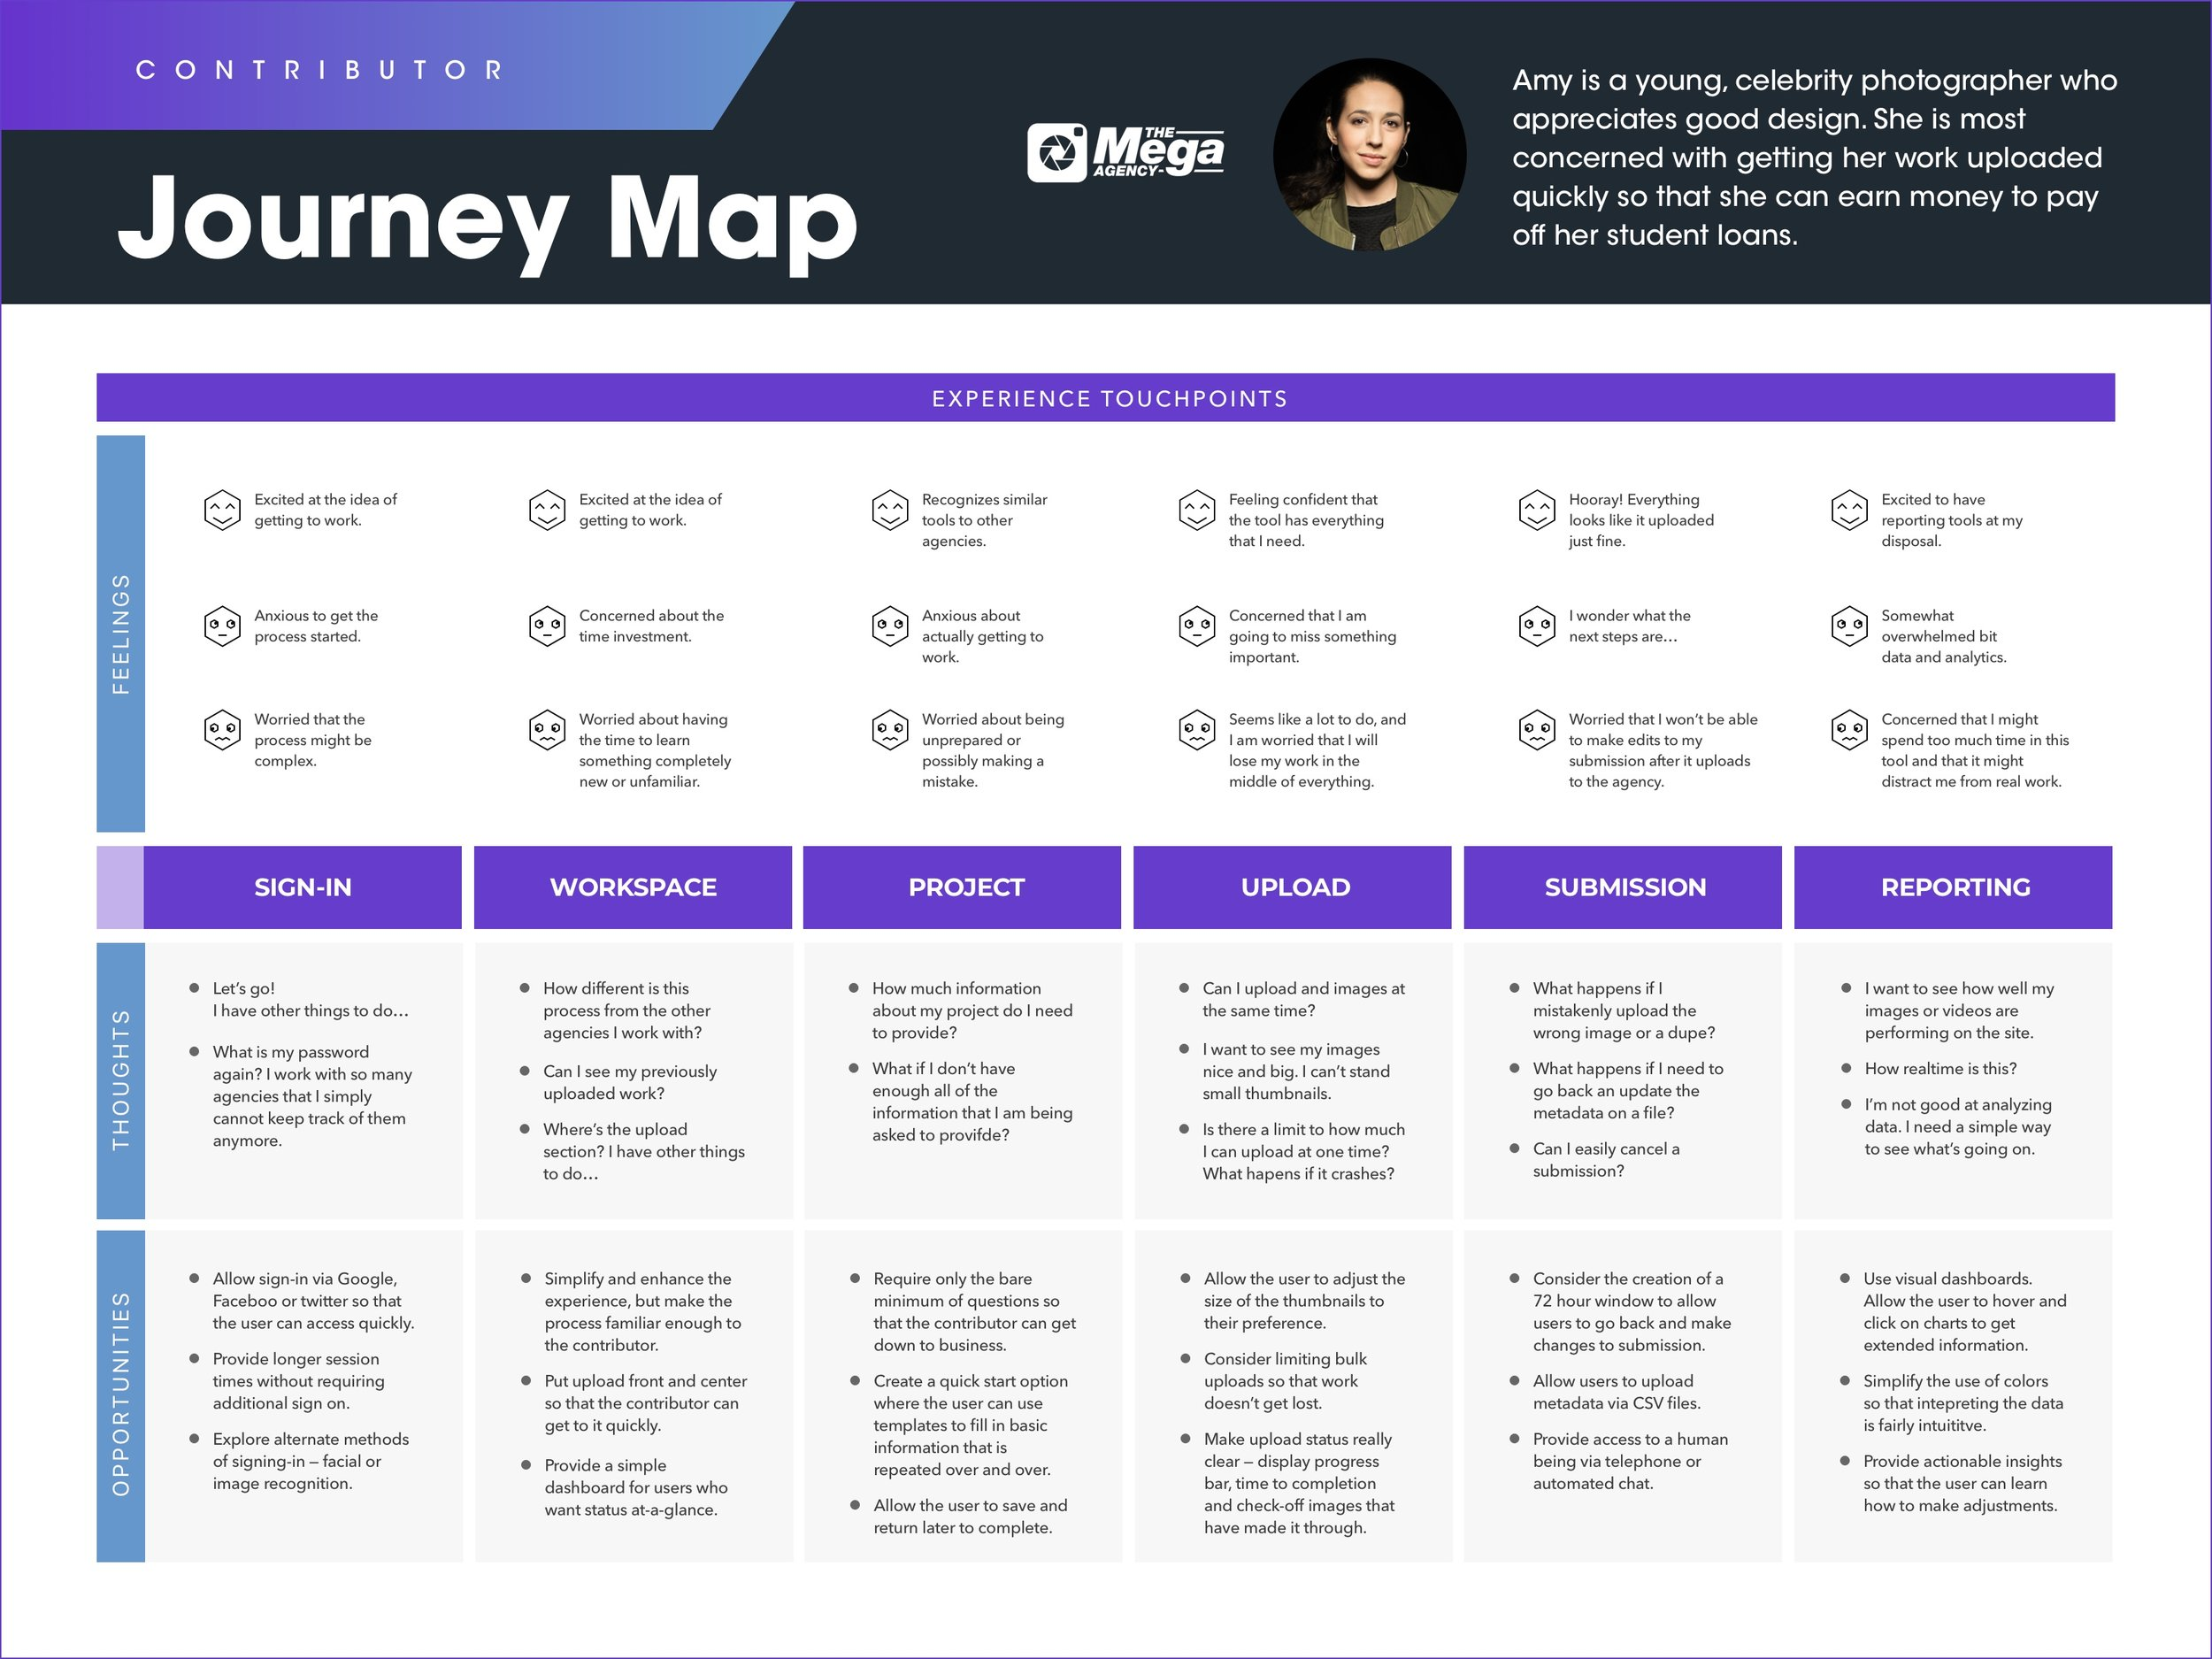 - It was important for me to have a sense of how someone might interact with the product that I was designing. Journey maps uncovered the user's thoughts and feelings every step of the way, revealing opportunities to address paint points and deliver valuable solutions.